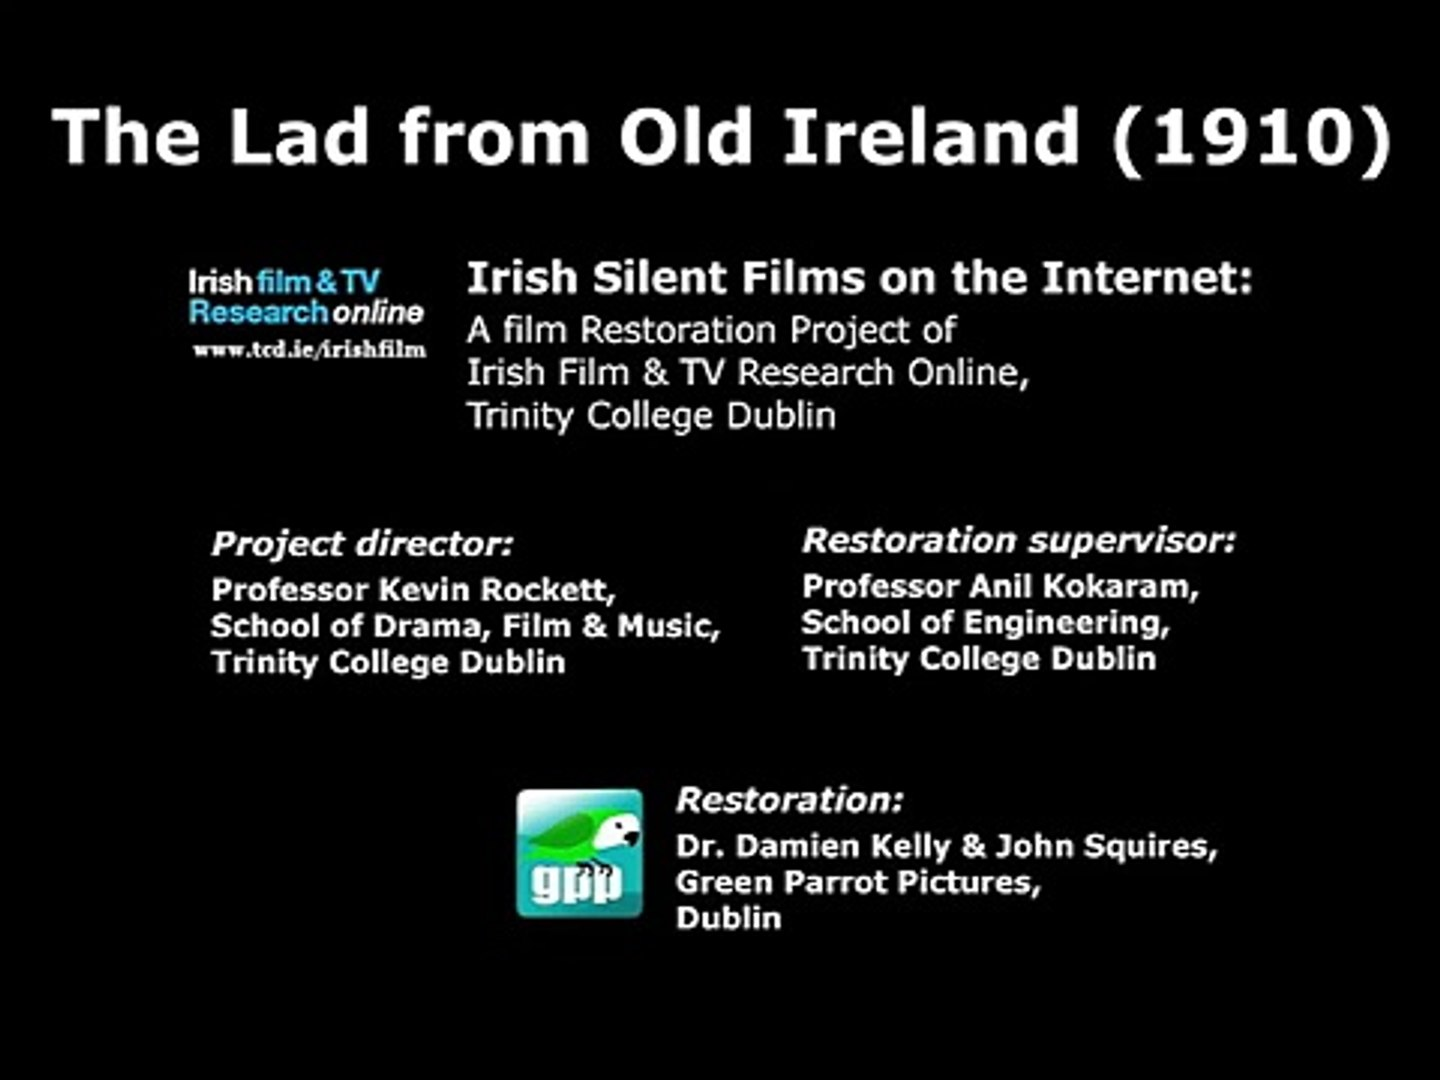 The Lad from Old Ireland (1910)